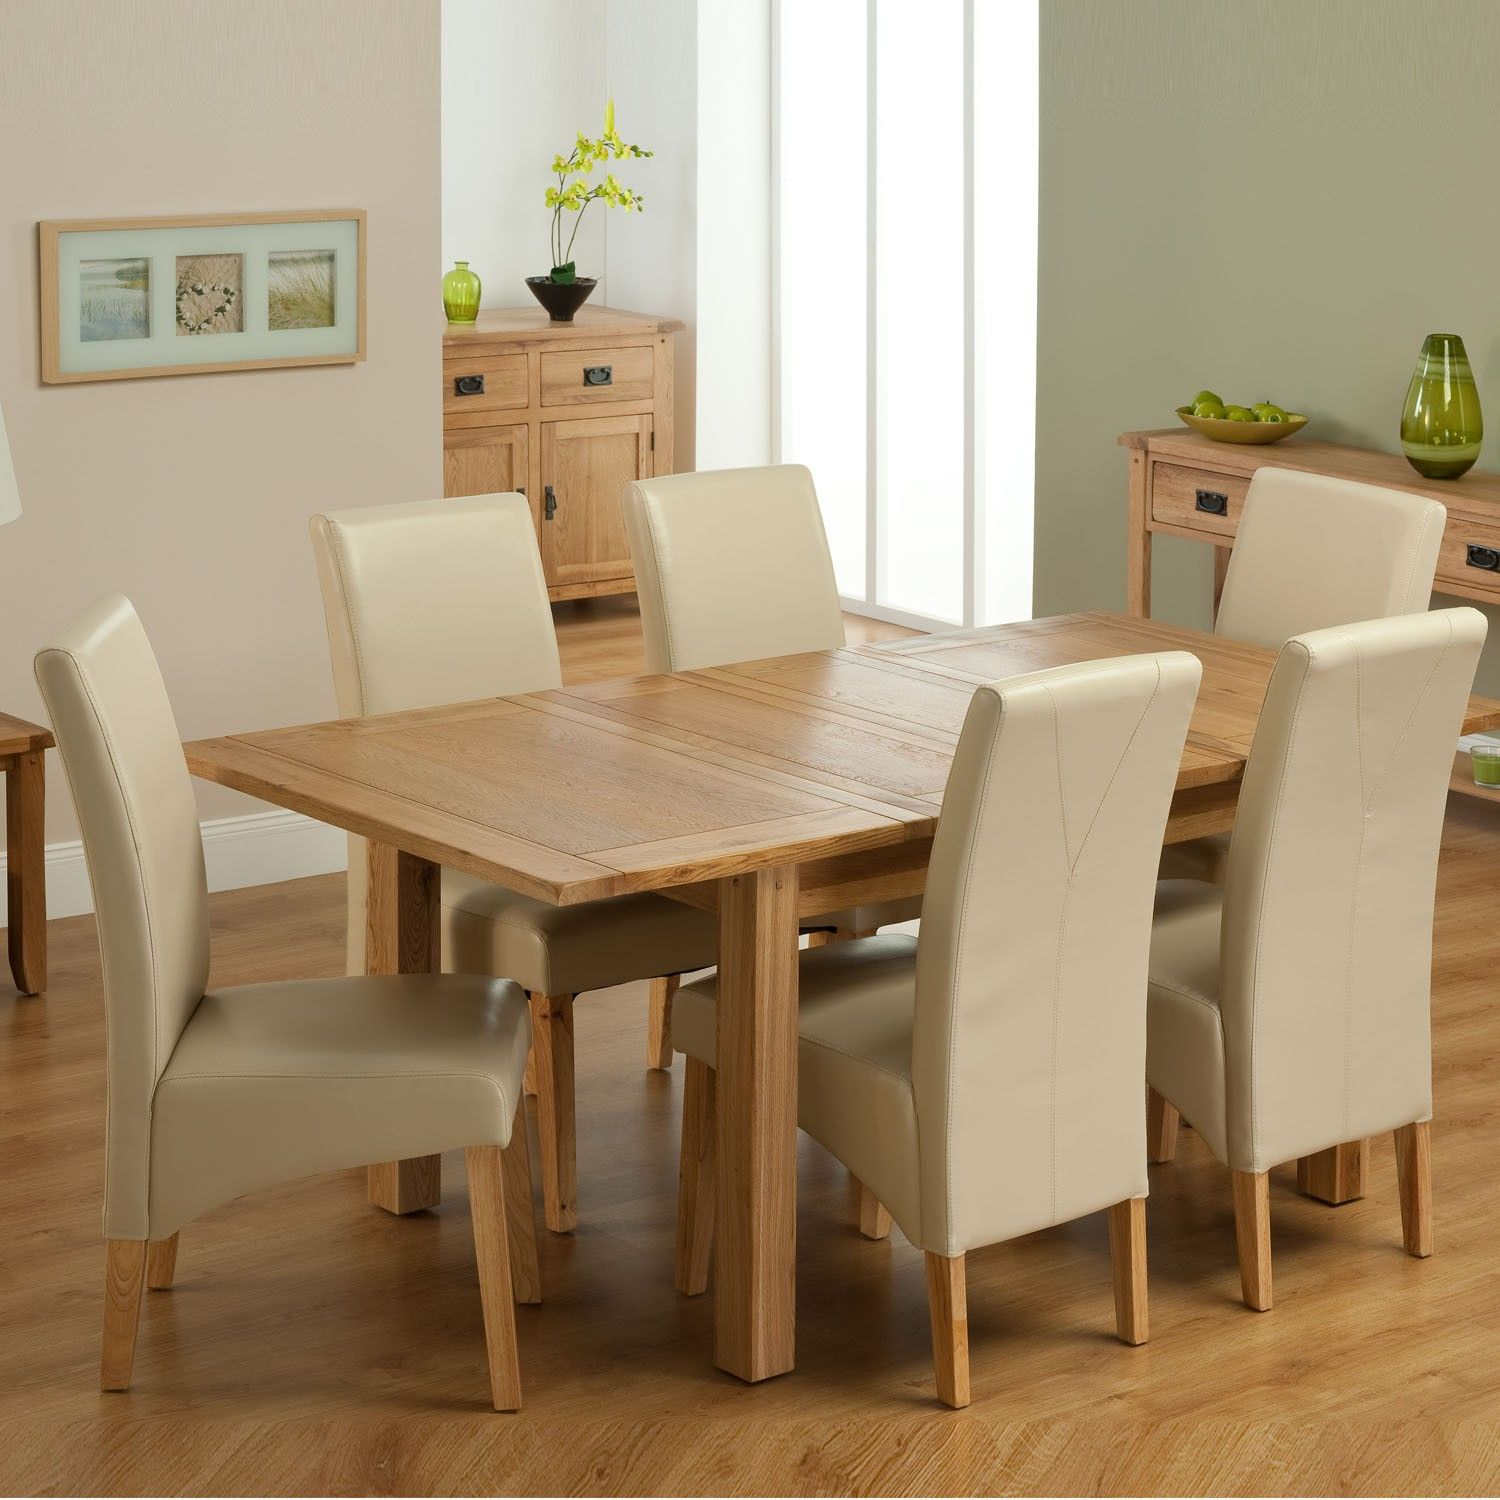 35++ Wooden dining table and chairs design Best Seller